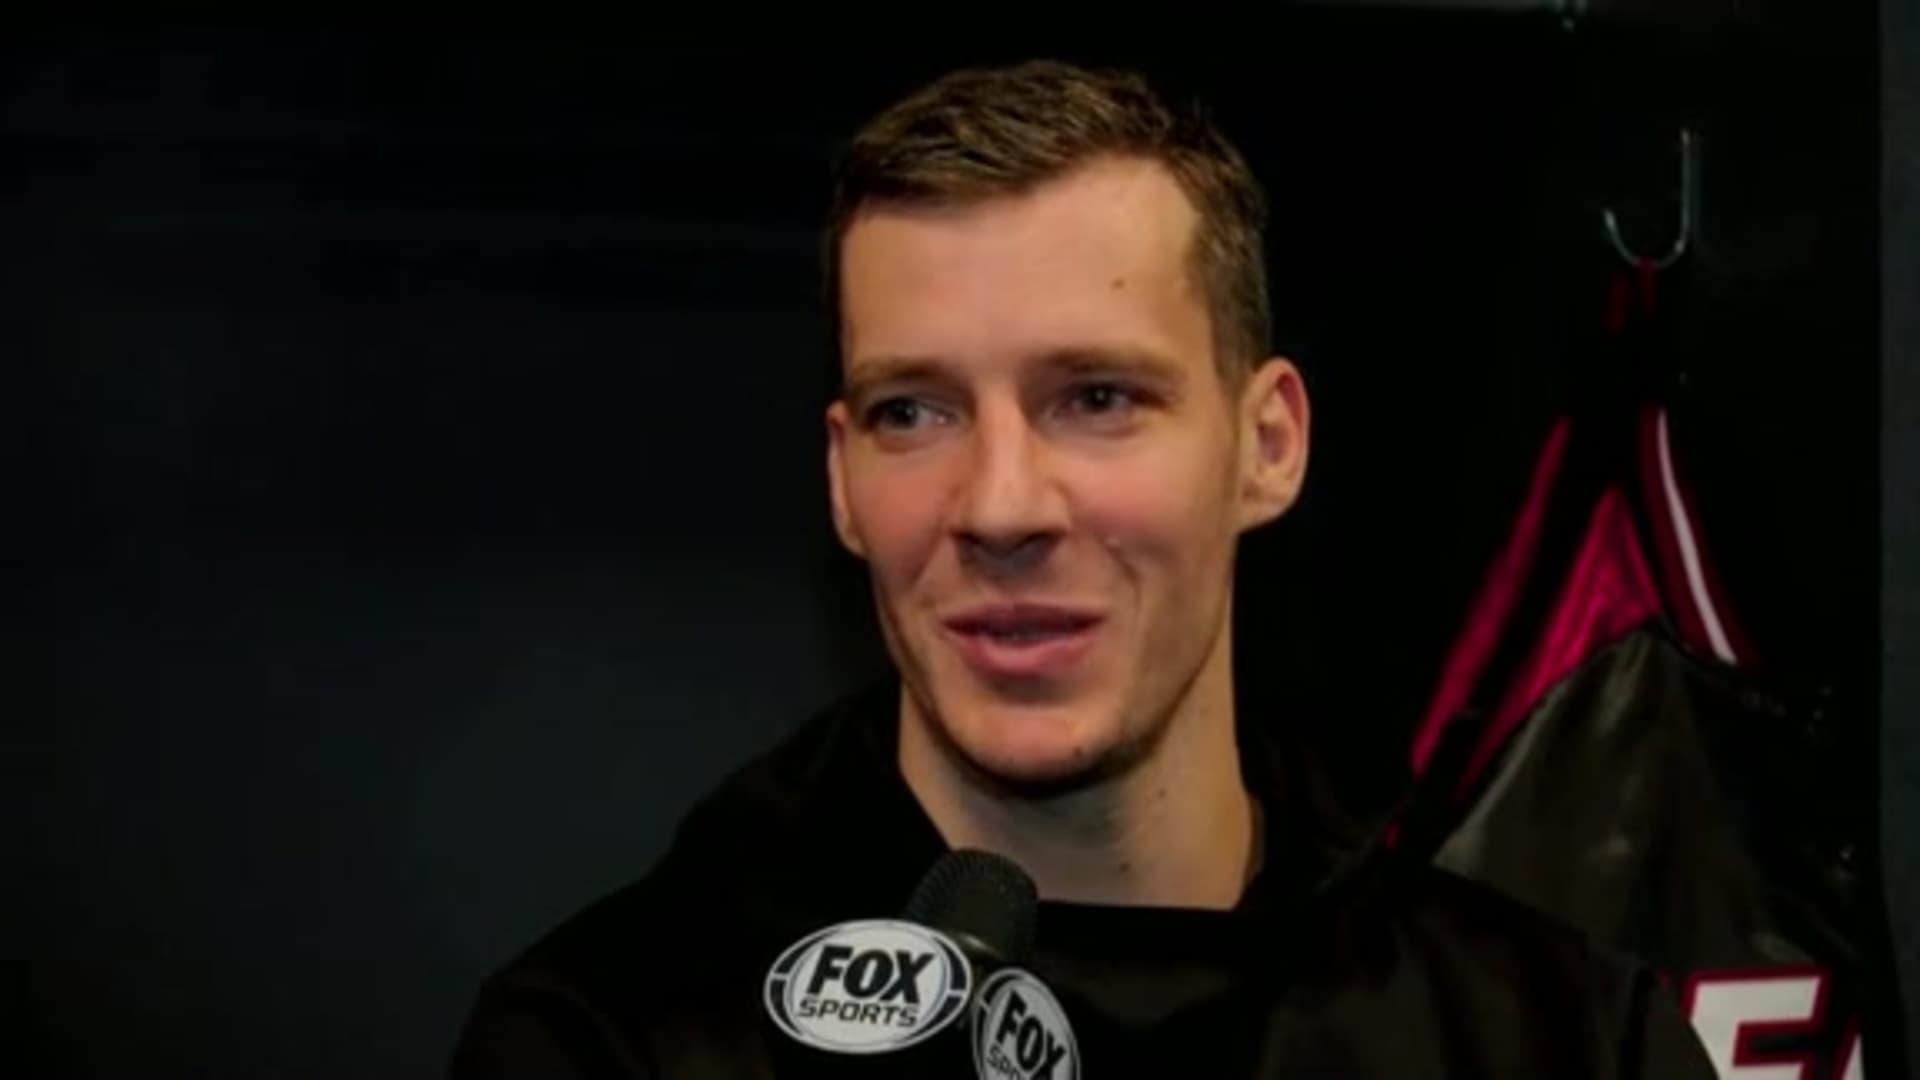 Catching Up With Goran Dragic